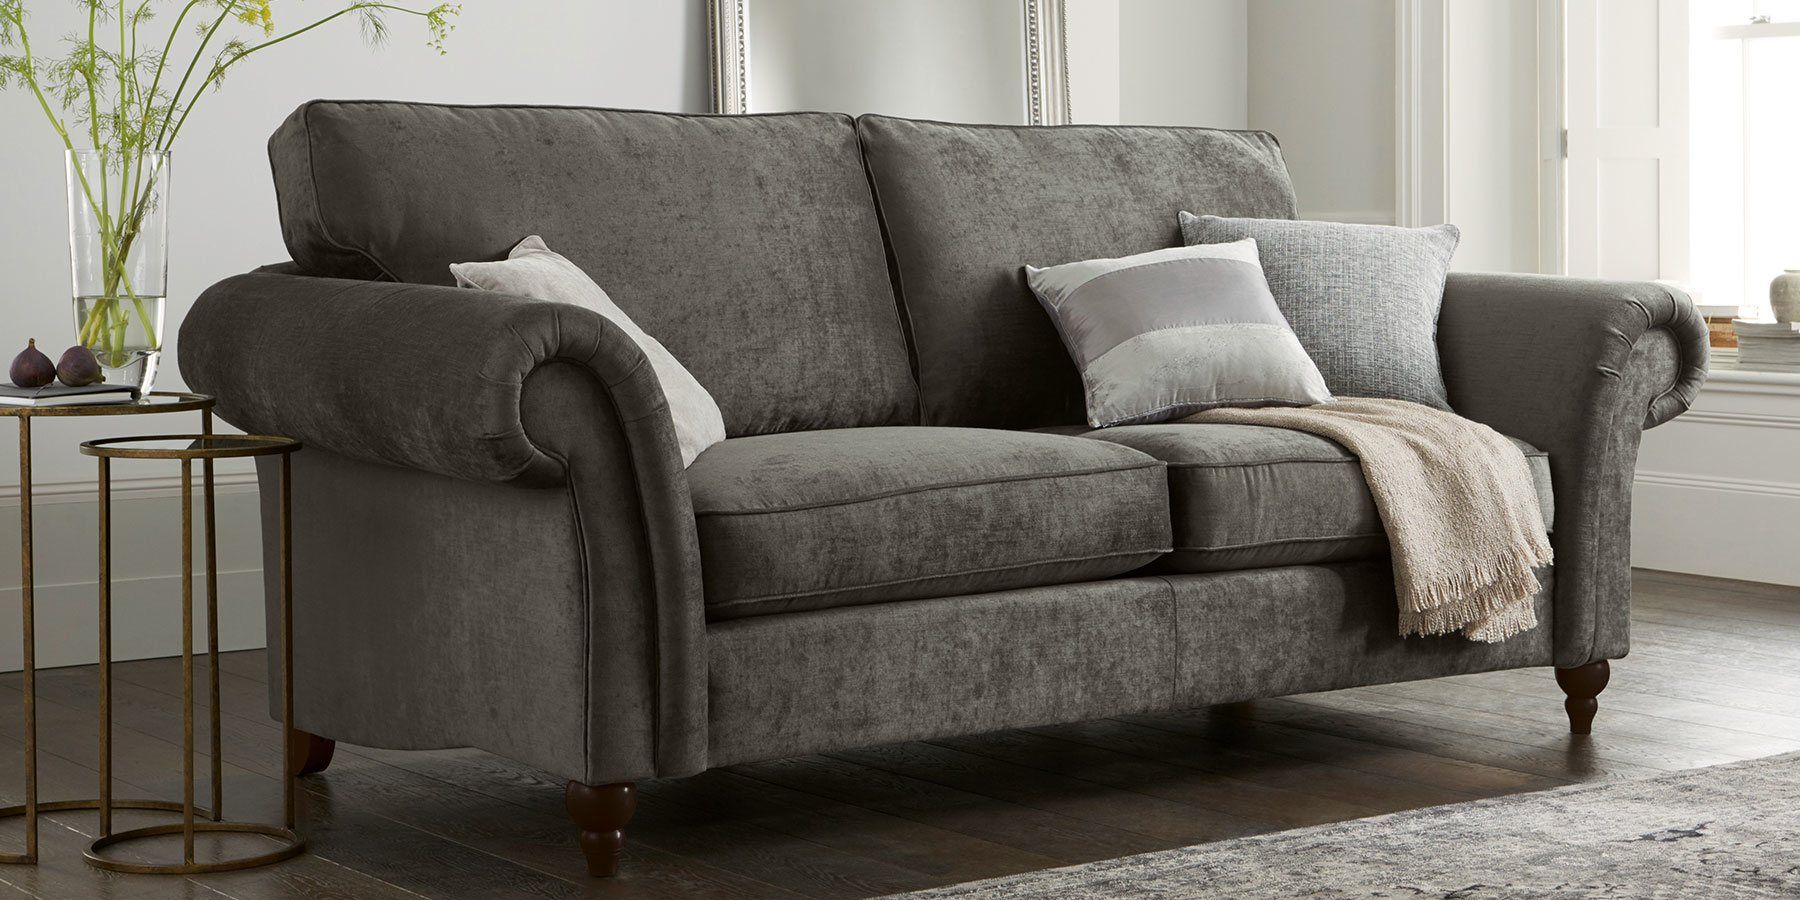 Buy Gosford Medium Sofa 3 Seats Soft Marl Mid French Grey Lowturned Light From The Next Uk Online Shop Buy Sofa Sofa Chair Grey Chair